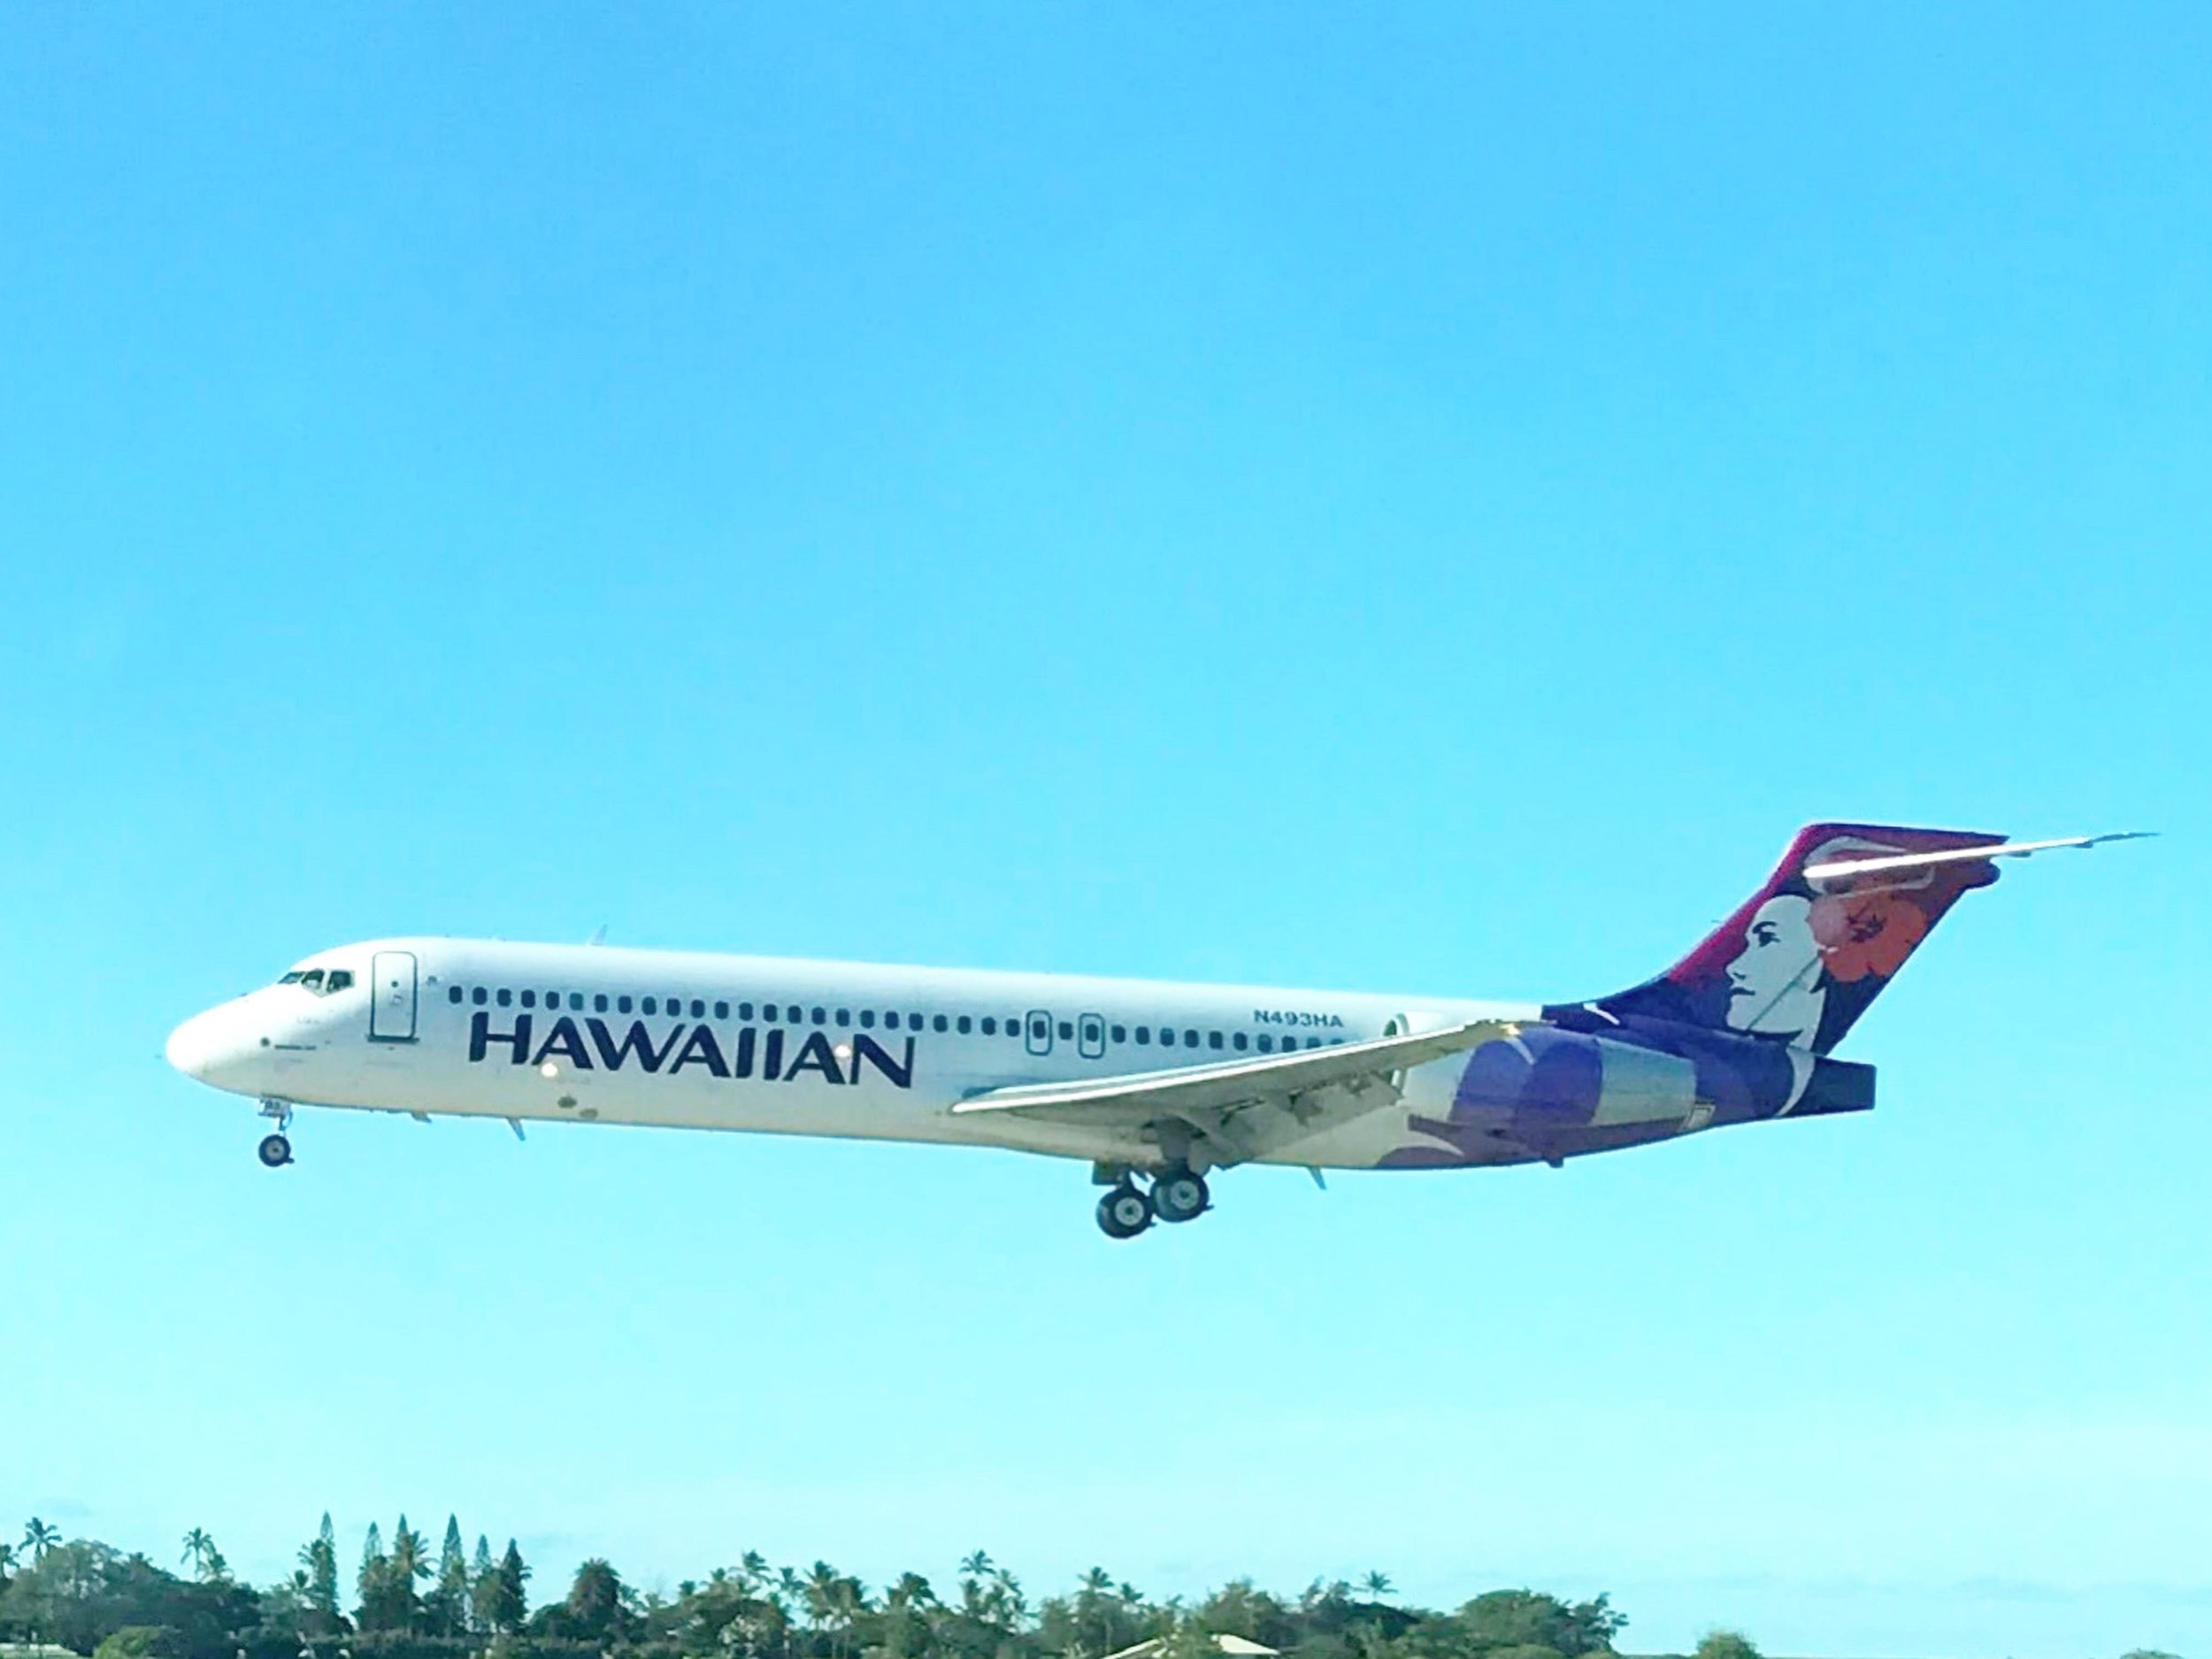 AIRCRAFT FLEET - Hawaiian operates a fleet of wide-body, narrow-body, and regional aircraft. Get detailed information about each plane, and see cabin and exterior photos.